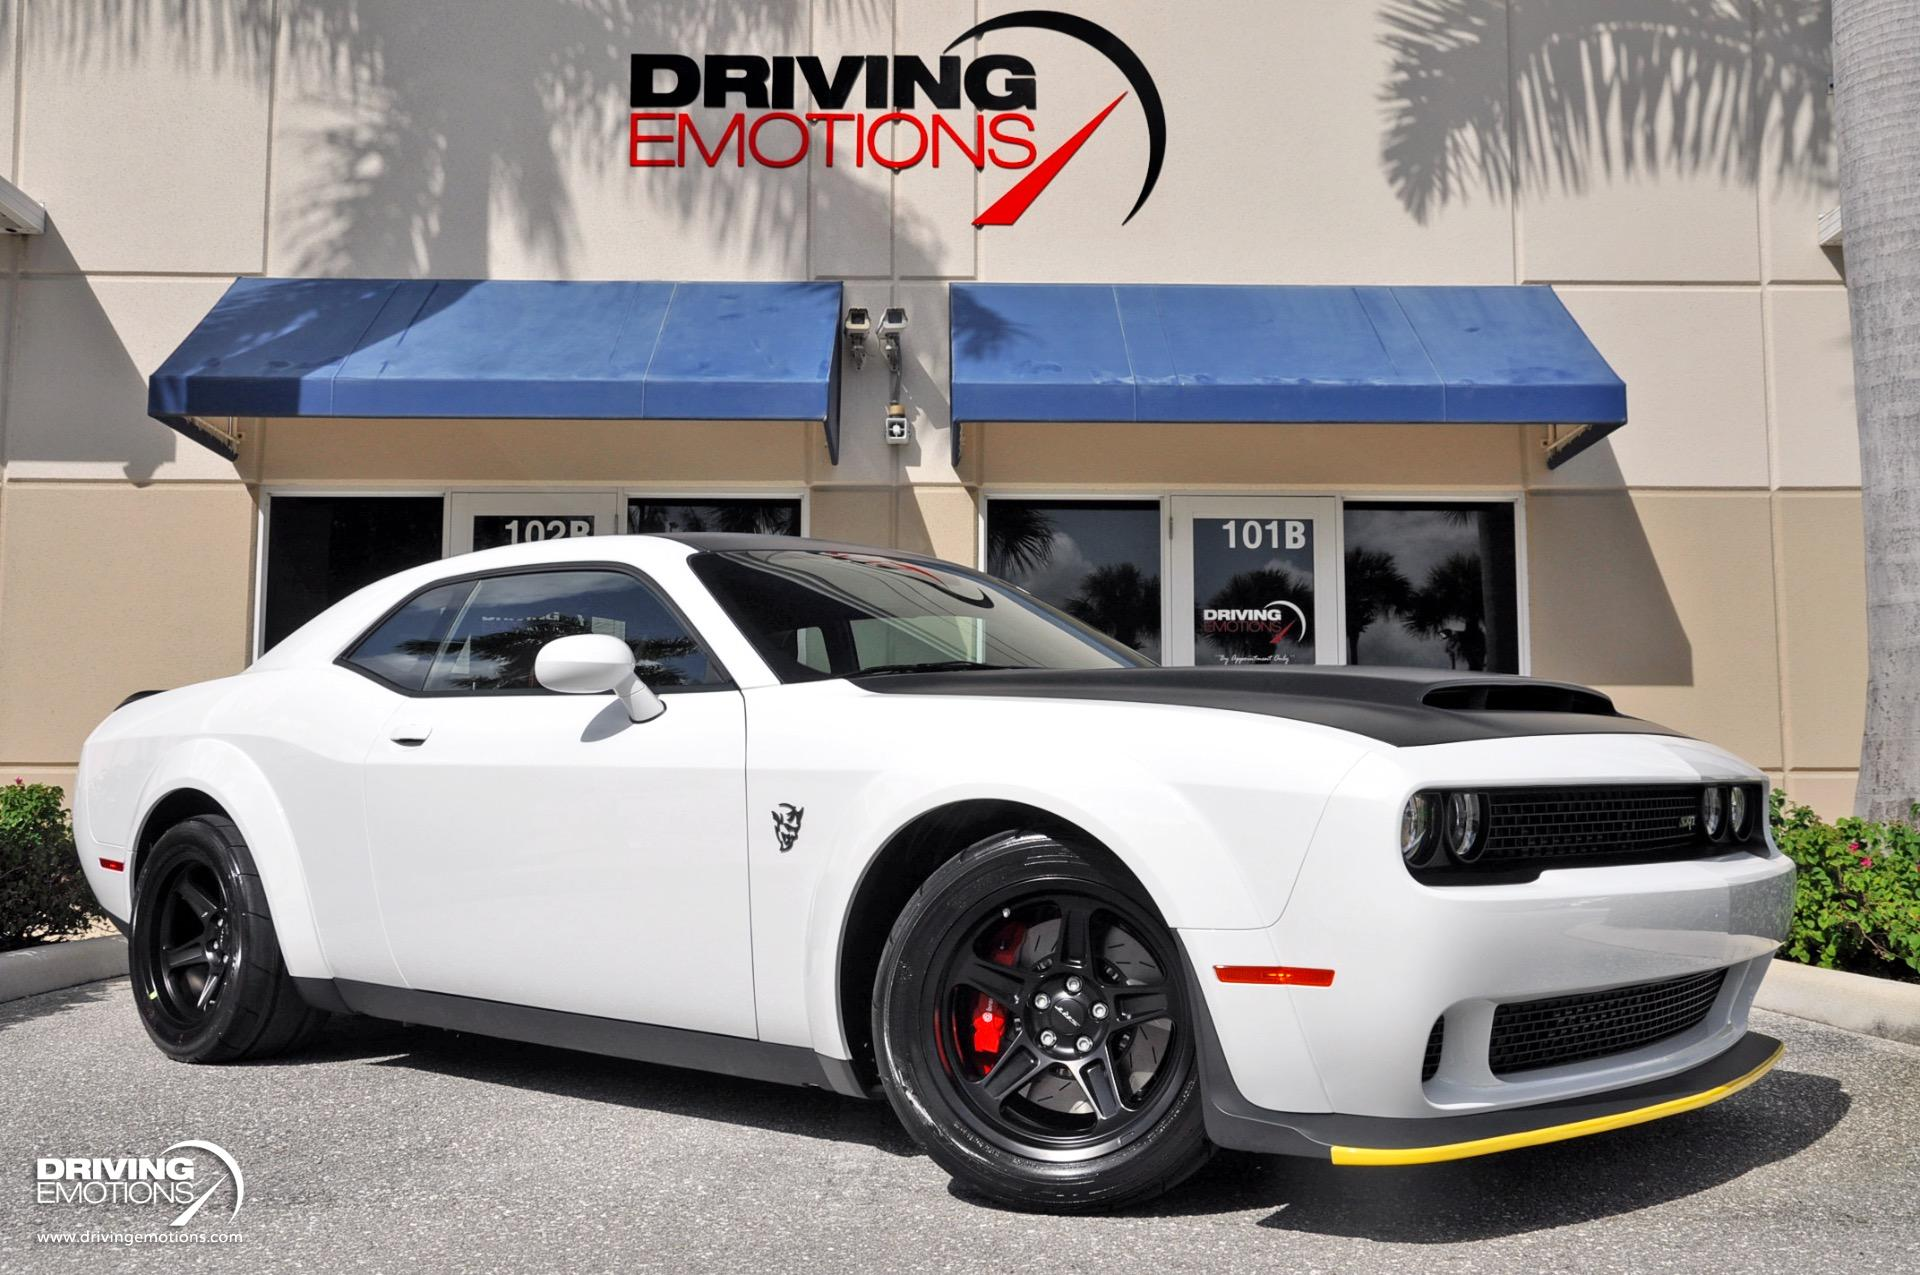 2018 Dodge Challenger Srt Demon Srt Demon White Red Stock 6175 For Sale Near Lake Park Fl Fl Dodge Dealer